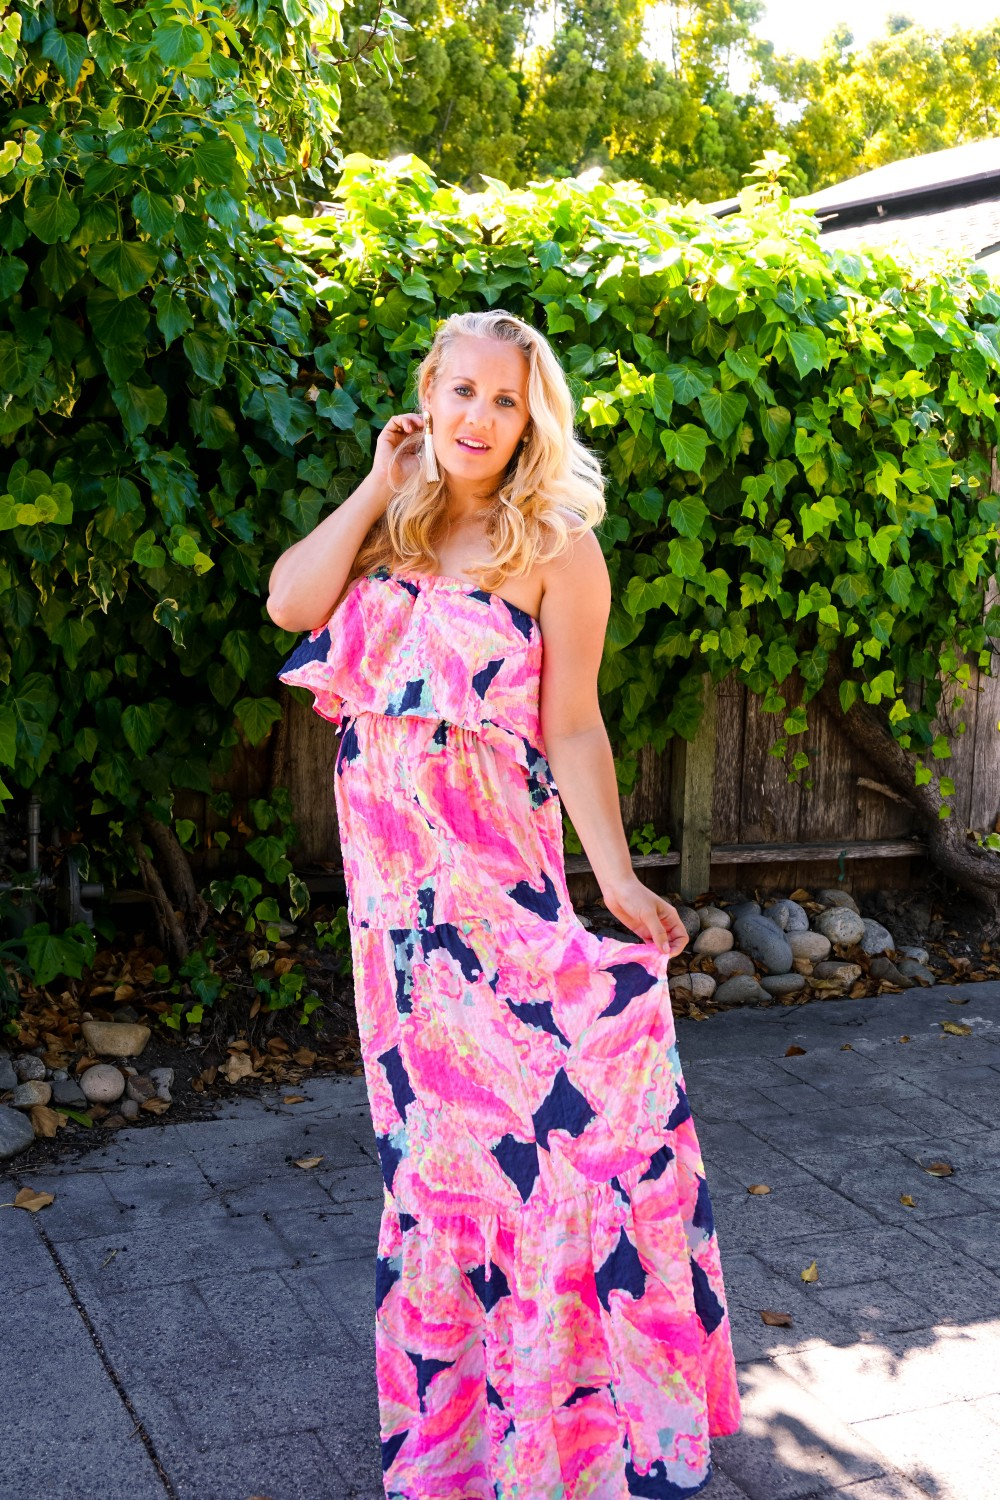 Lilly Pulitzer-Resort 365-Outfit Inspiration-Summer Style-Summer Maxi Dress-Summer 2017 Trends-Have Need Want 6